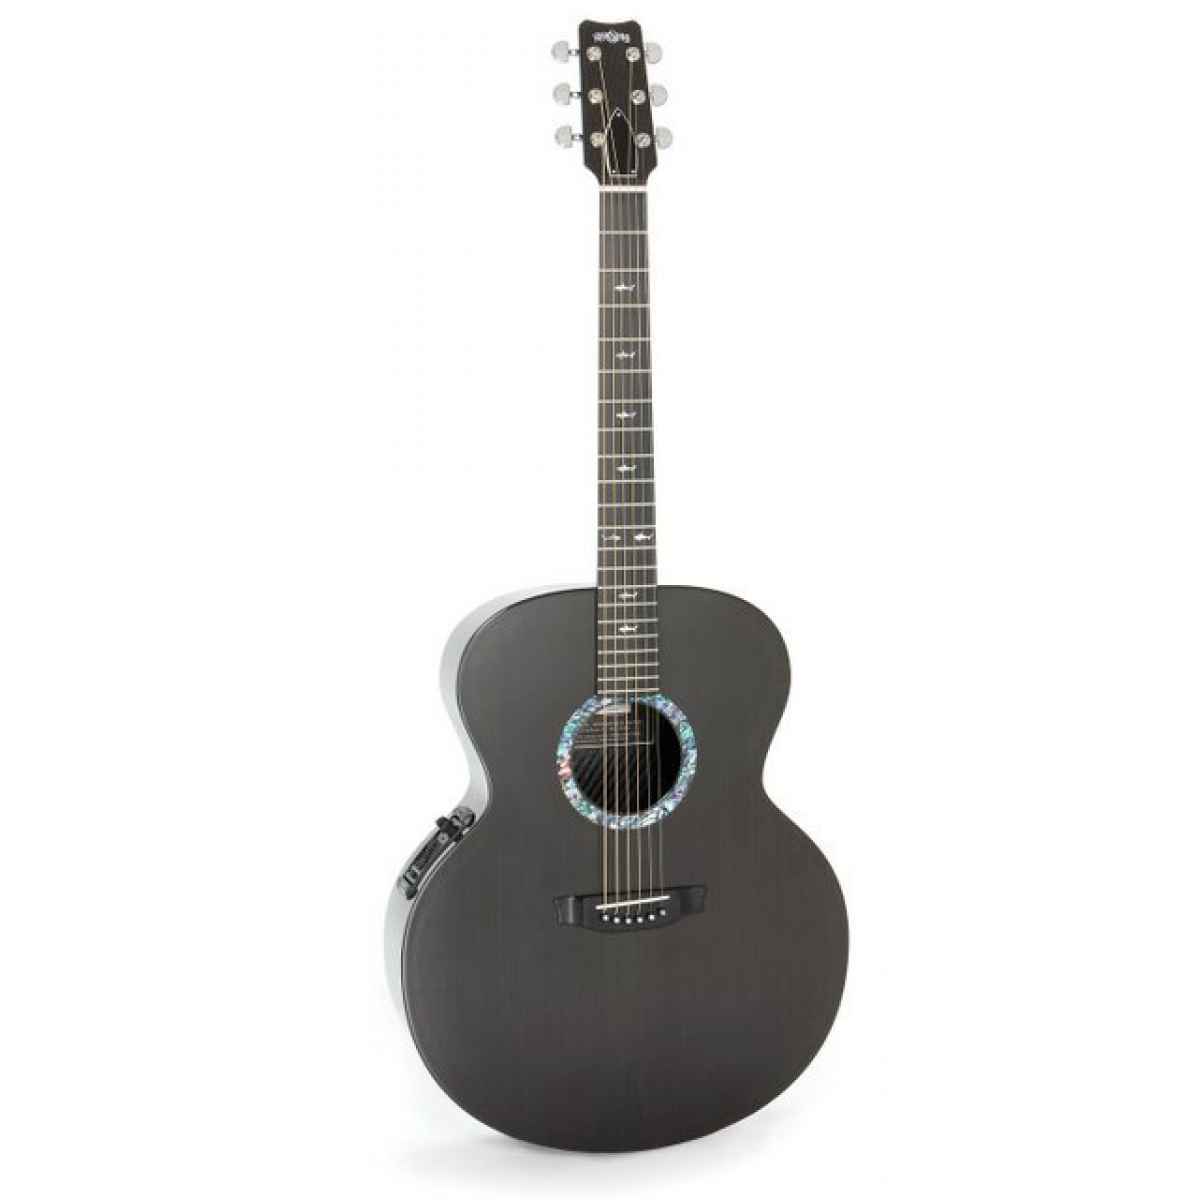 Jumbo Möbel Discount Rainsong Co Jm1000n2 Rainsong Co Jm1000 Jumbo Acoustic Guitar